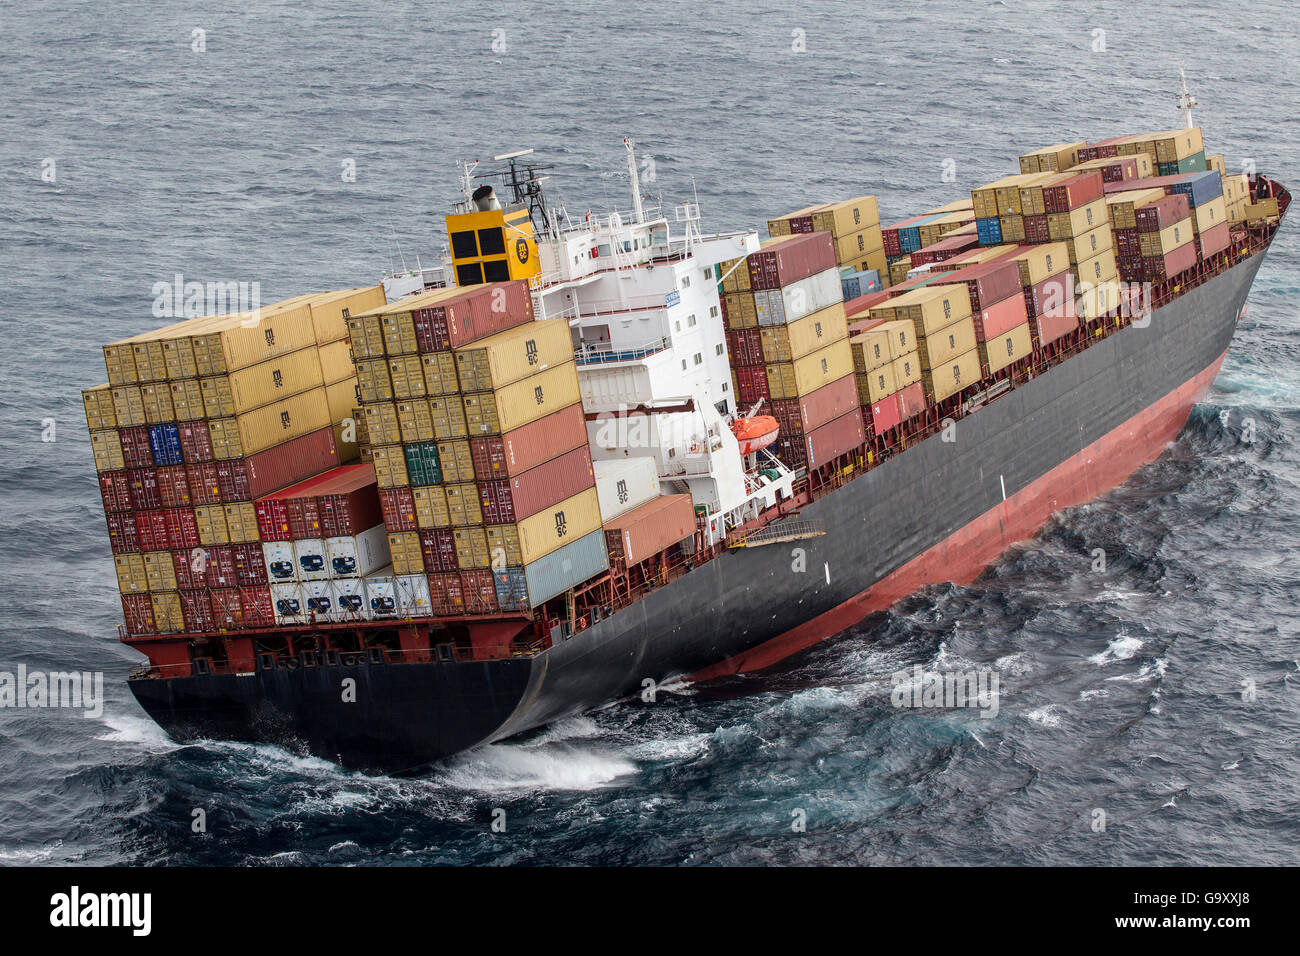 Container ship, MV Rena, approximately 14 hours after becoming grounded on Astrolabe Reef, off of the Port of Tauranga, - Stock Image